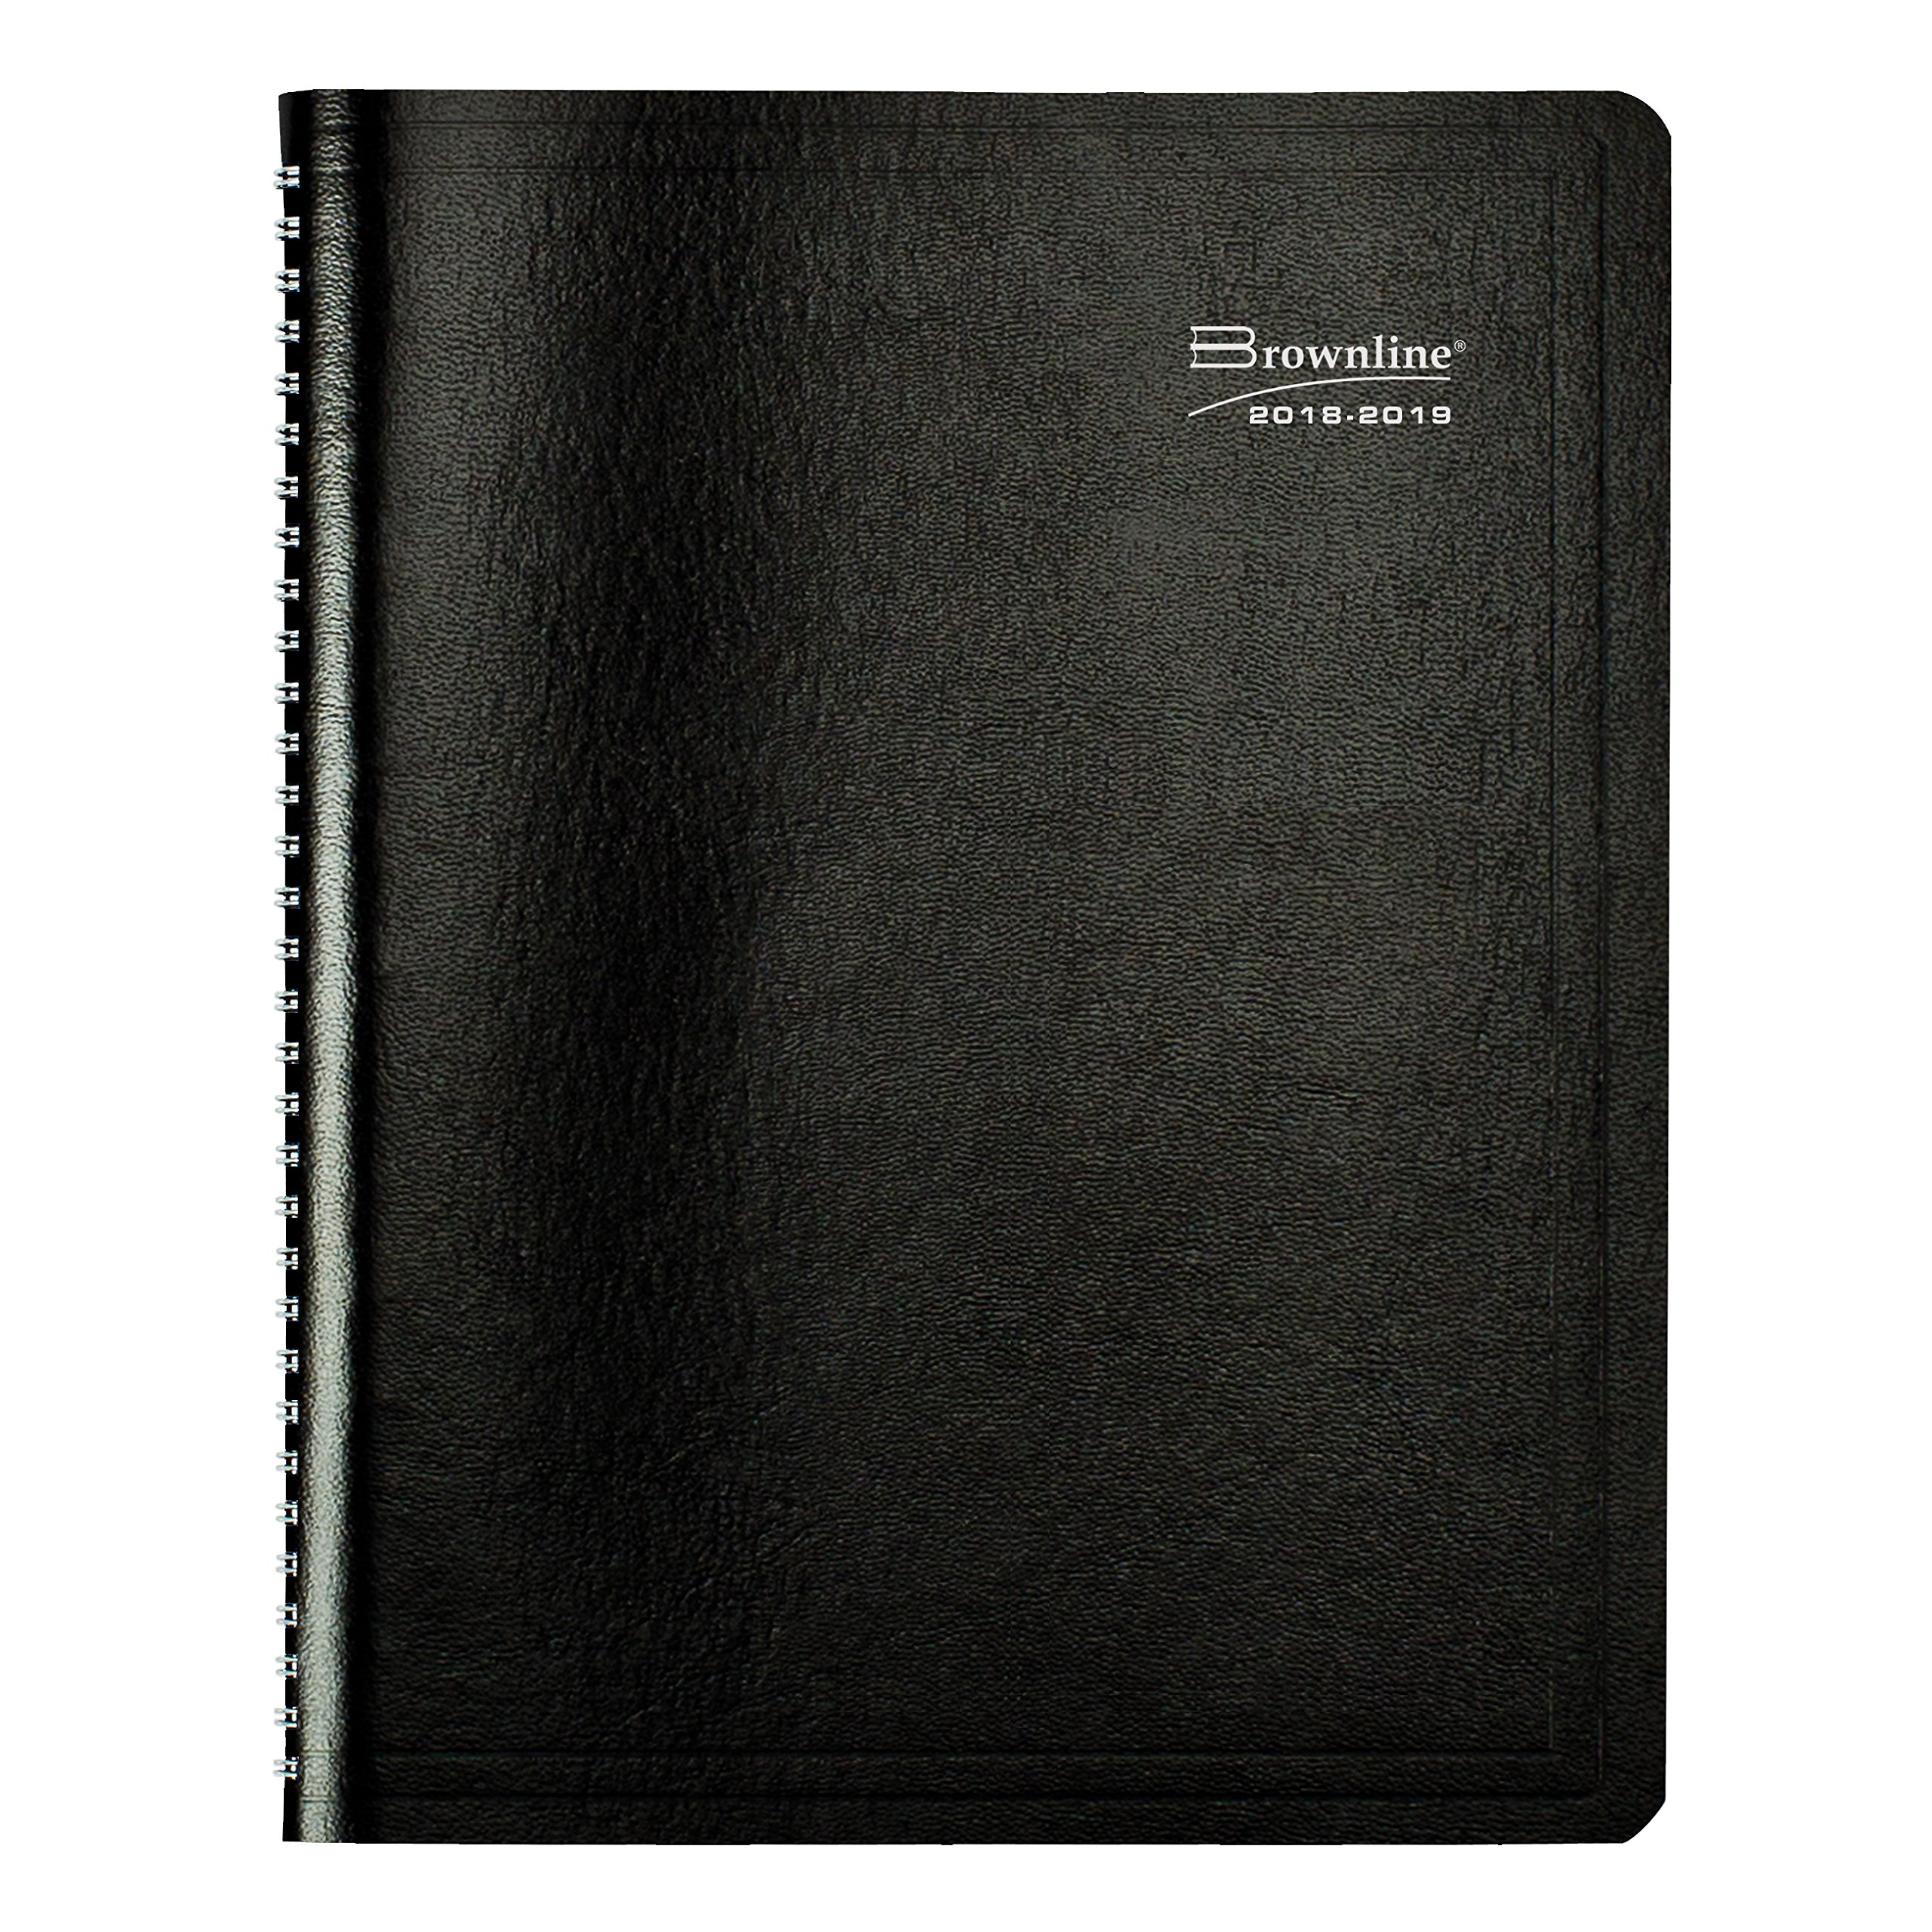 Brownline 2018-2019 Monthly Academic Planner, 11 x 8.5 inches, Month to View Diary, July 2018 to August 2019, 14 Months, Black (CA701.BLK-19)